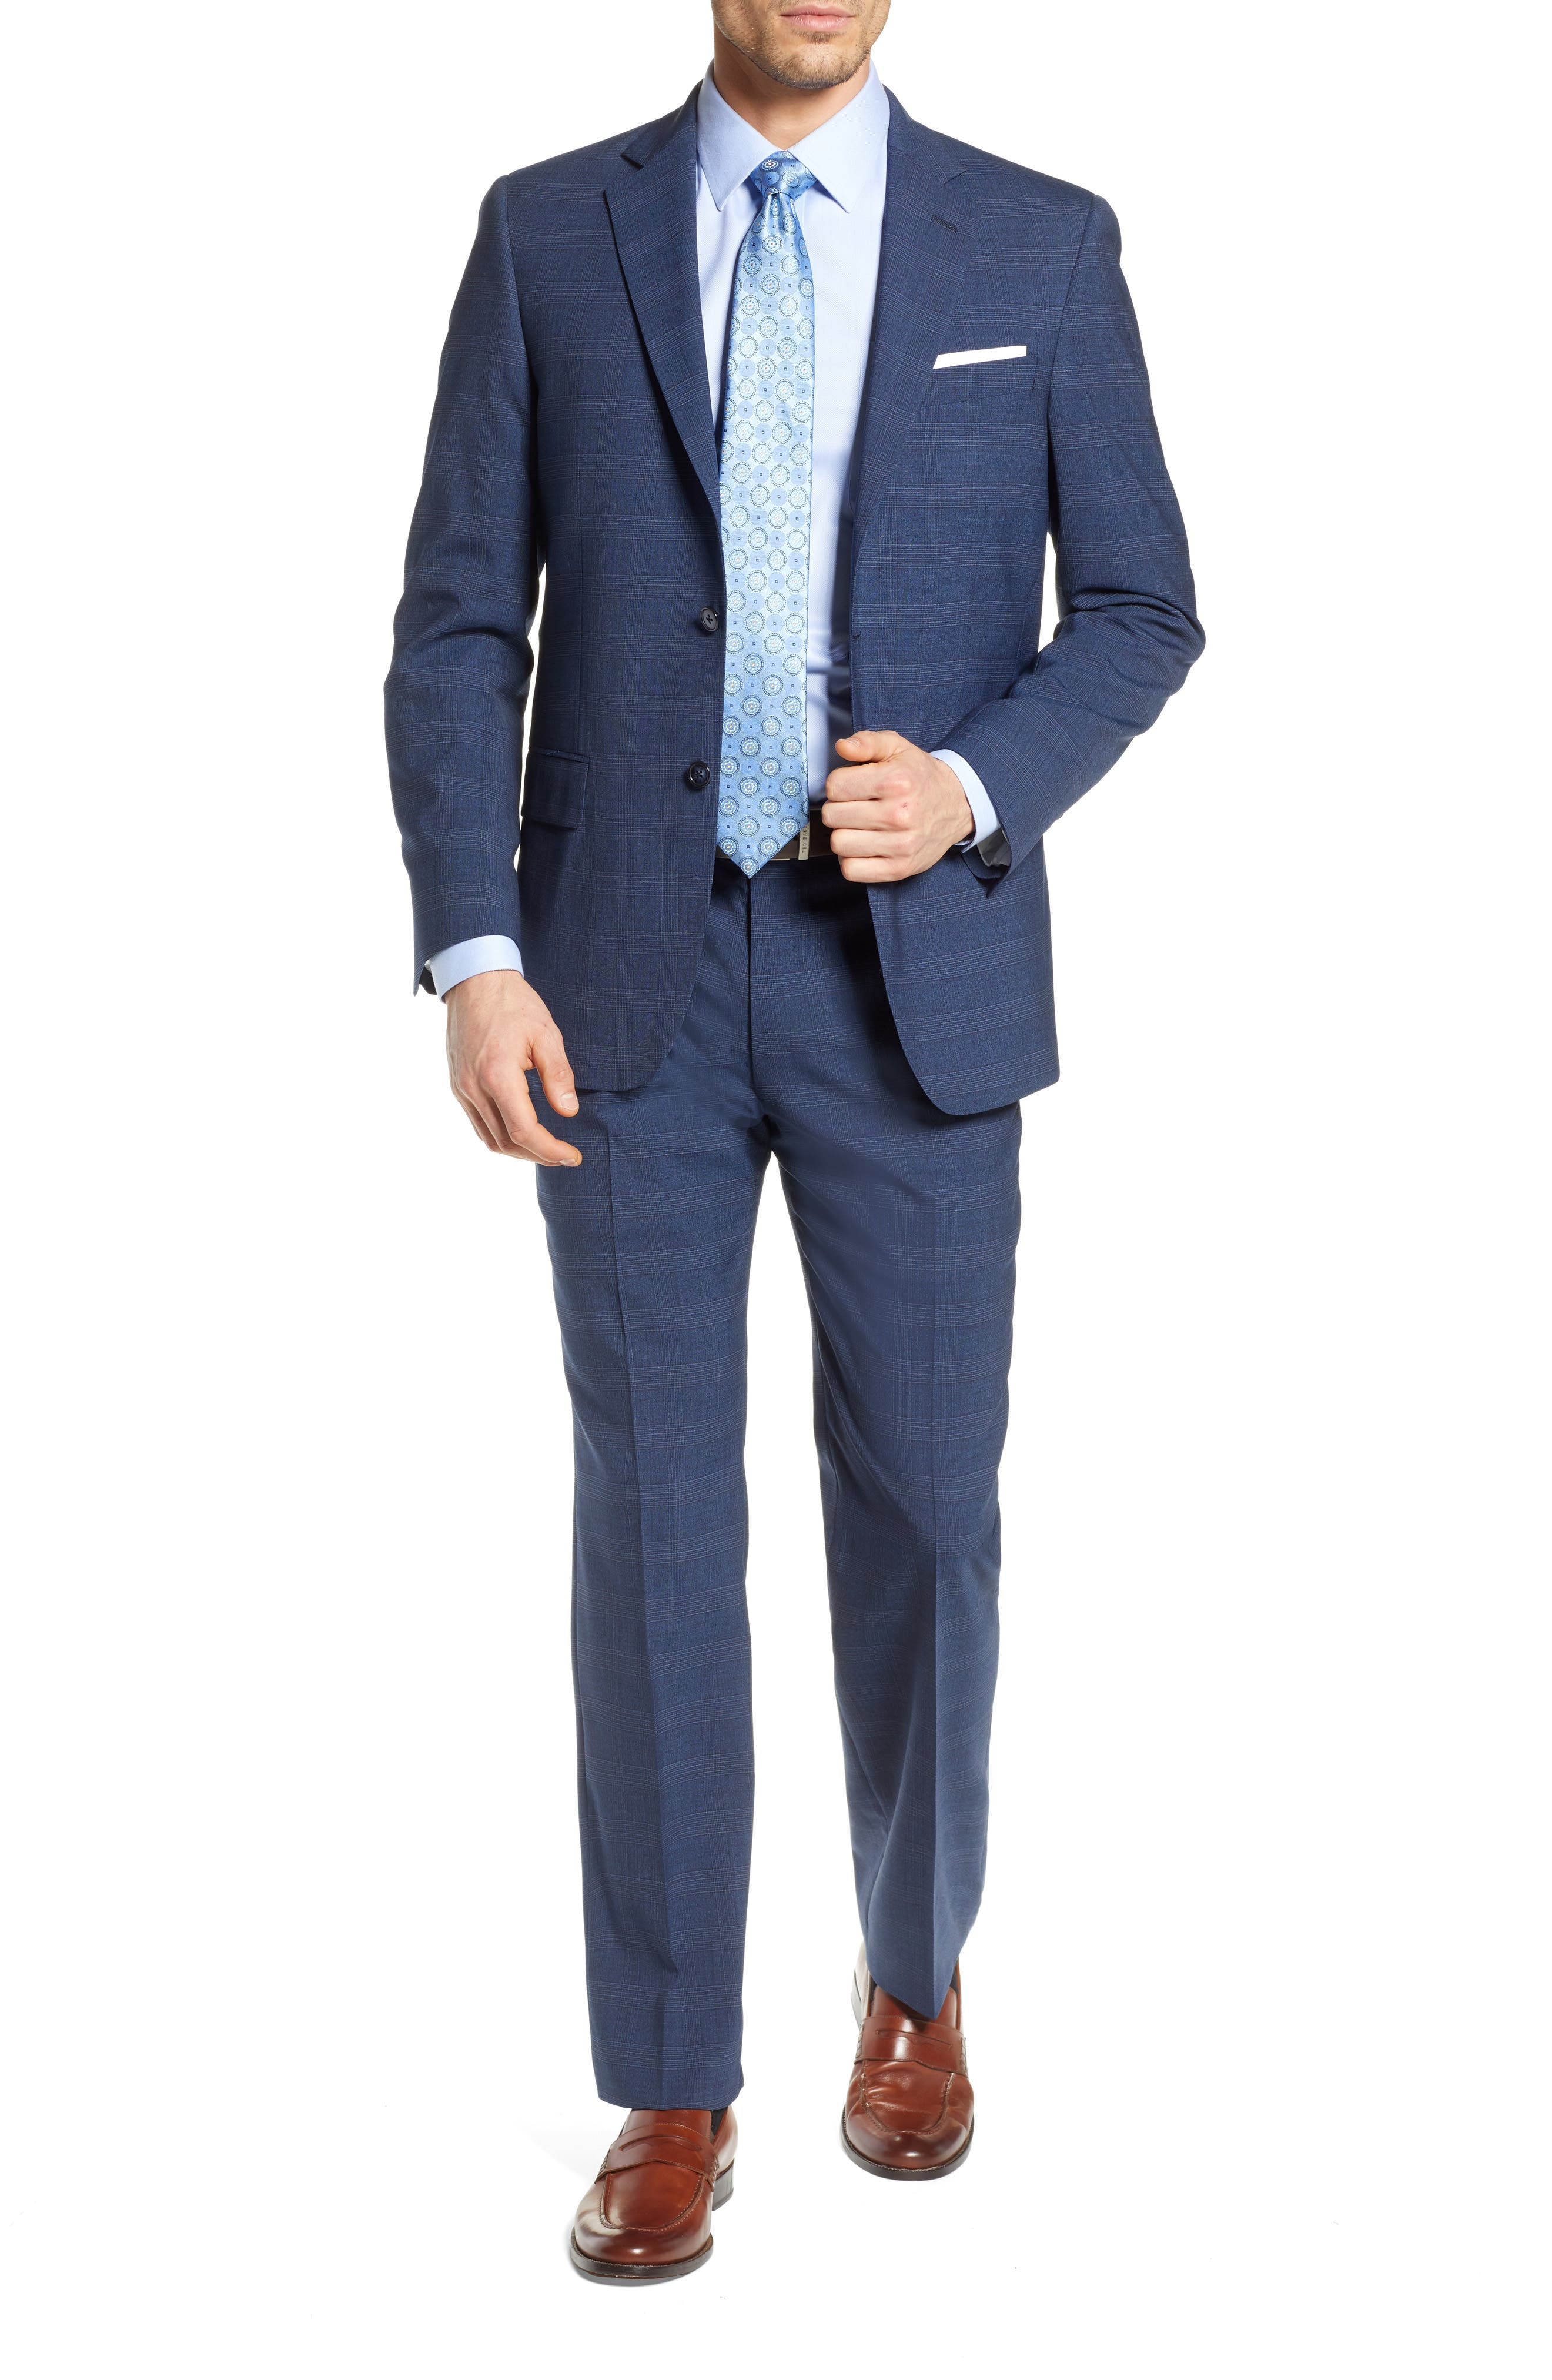 HART SCHAFFNER MARX, New York Classic Fit Plaid Wool Blend Suit, Main thumbnail 1, color, 401